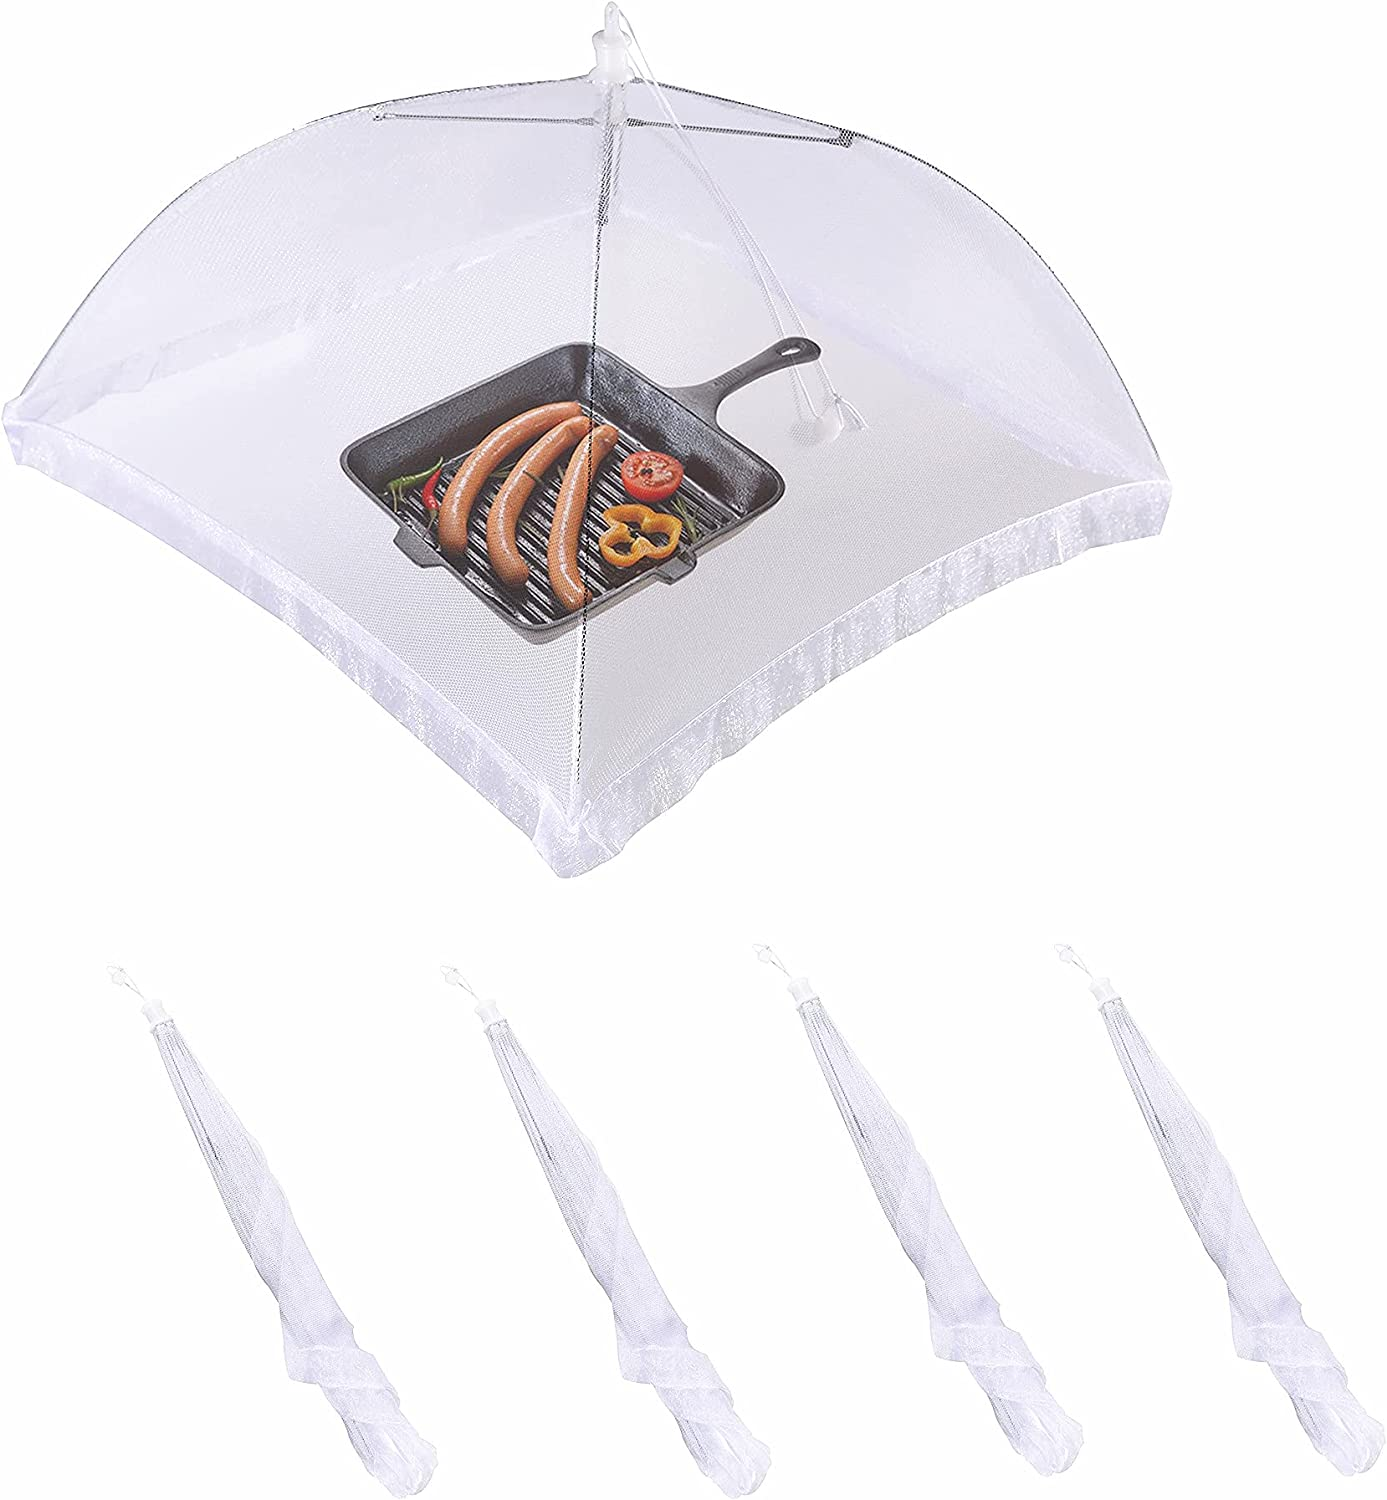 4pcs Food Covering Tents, White Mesh Screen food Cover for Outdoor Picnics, BBQ, Camping and Parties (Ribbon Trimmed)